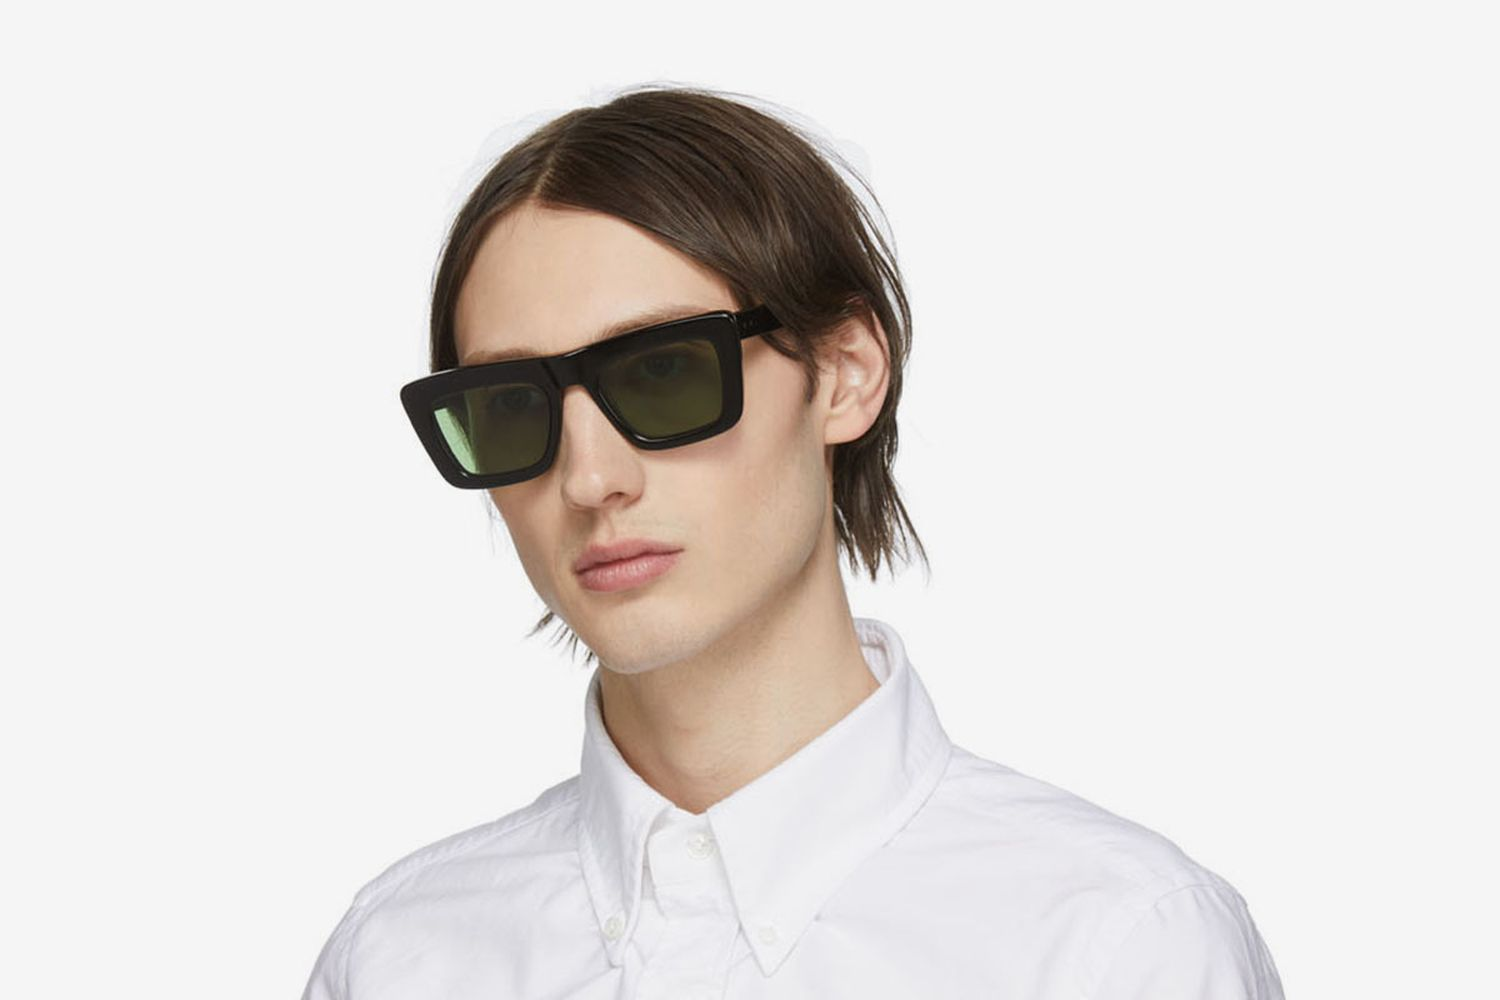 TB-415 Sunglasses